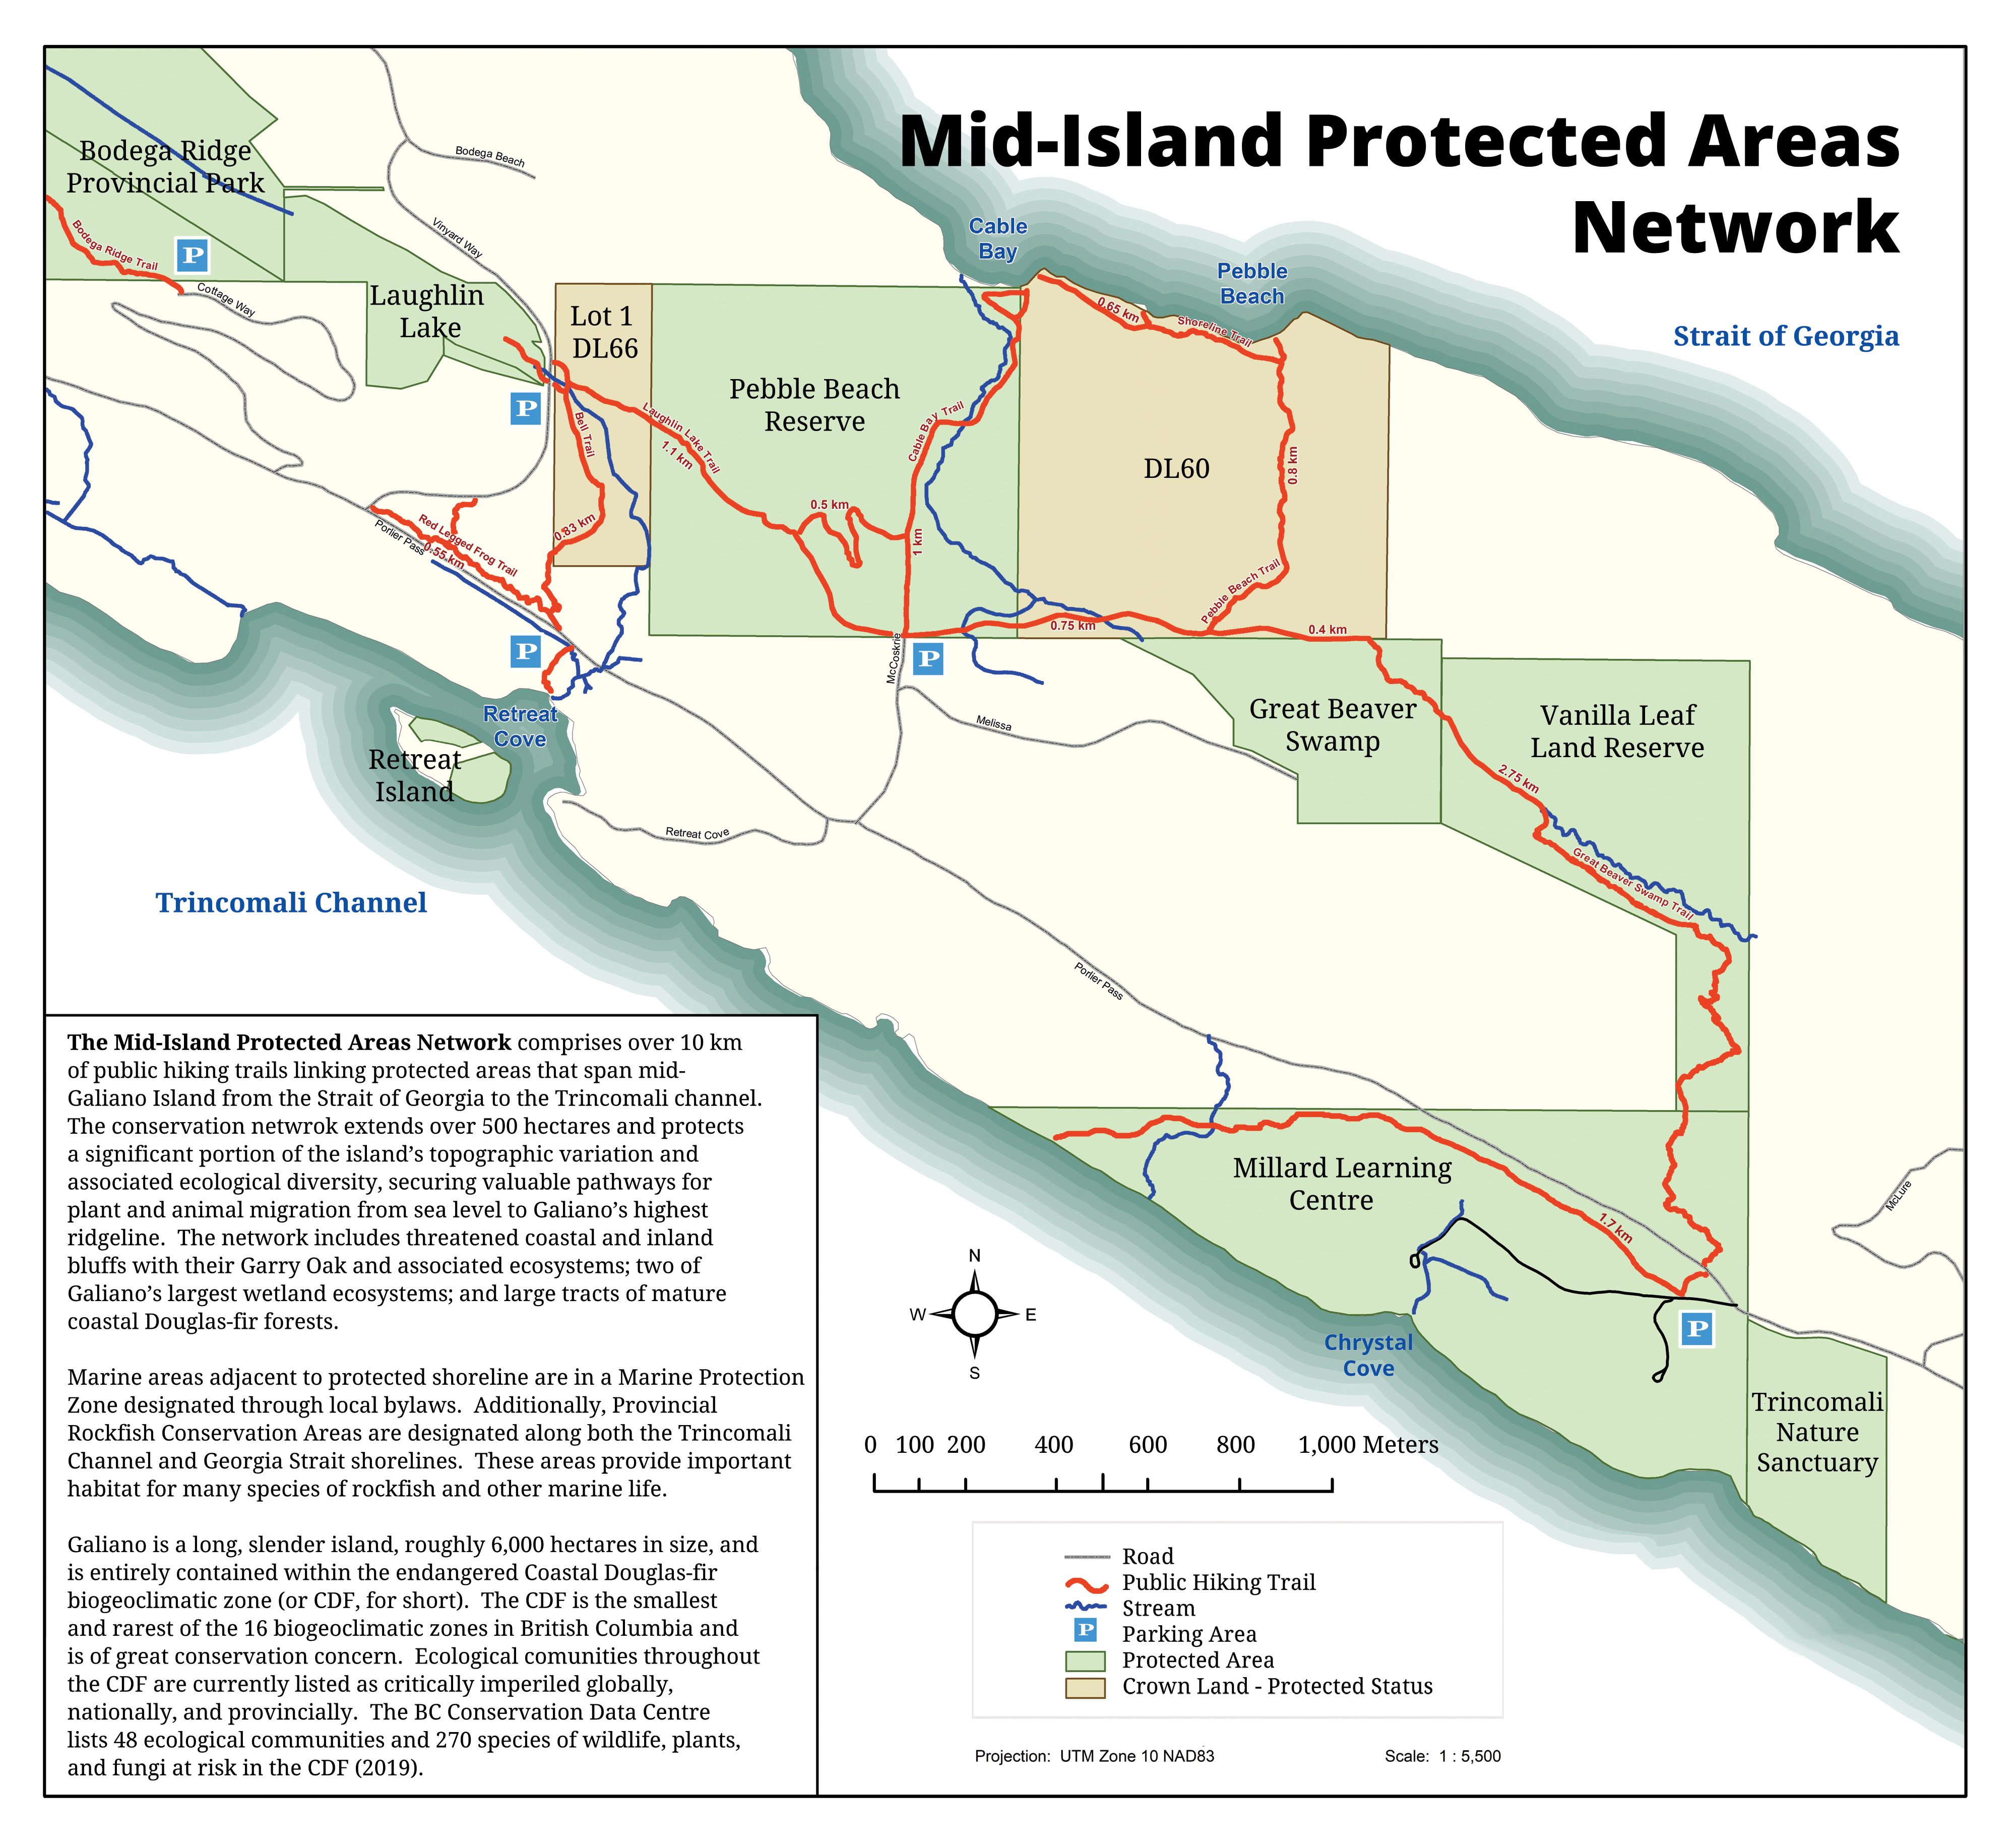 The Millard Learning Centre - Galiano Conservancy ociation on